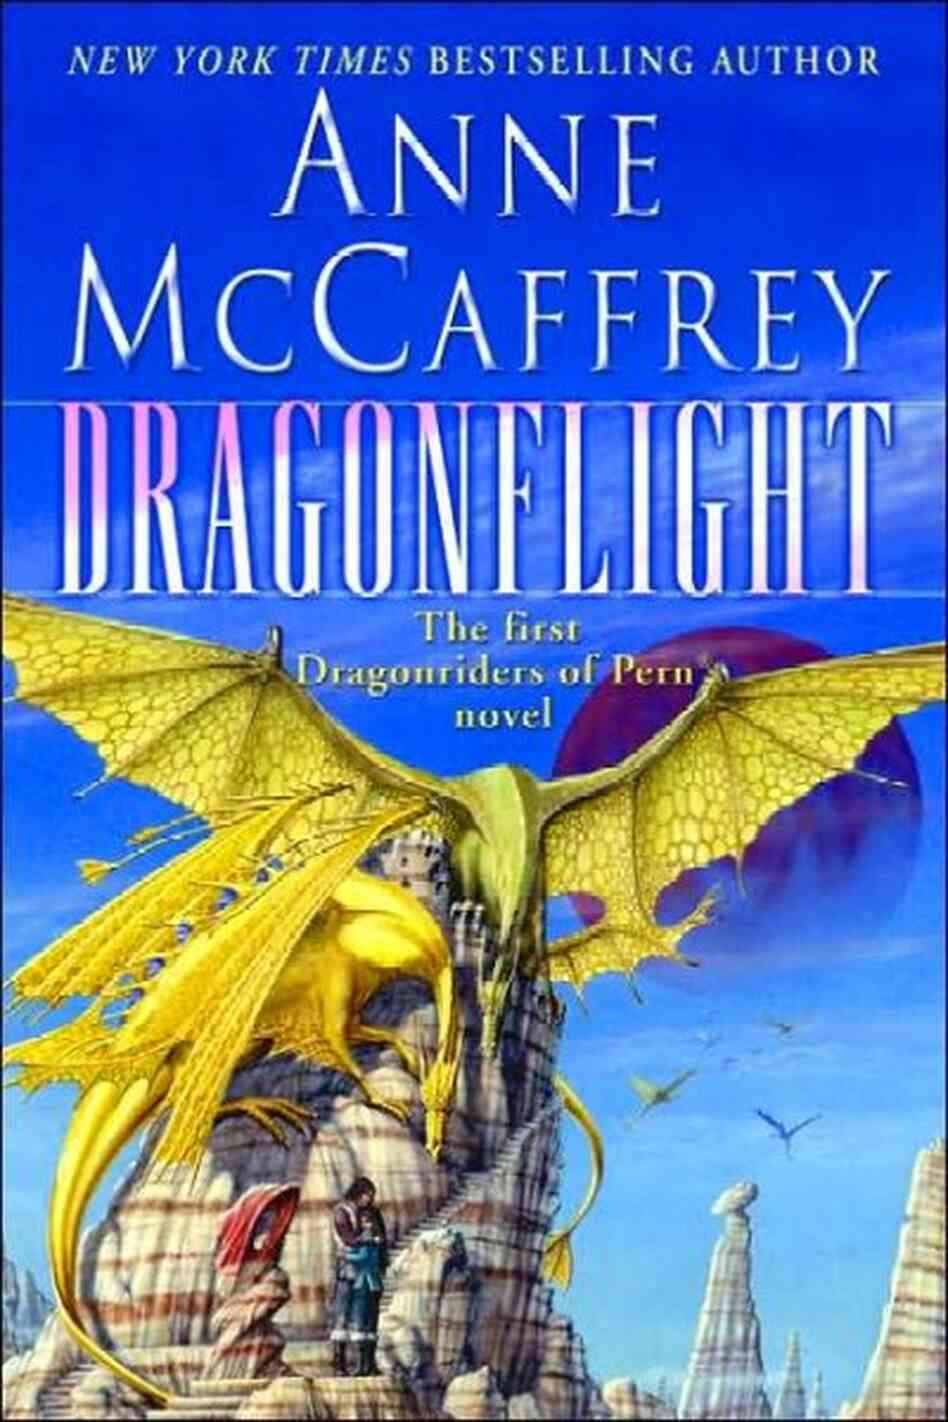 Dragonflight is the first book in the iconic Dragonriders of Pern series.